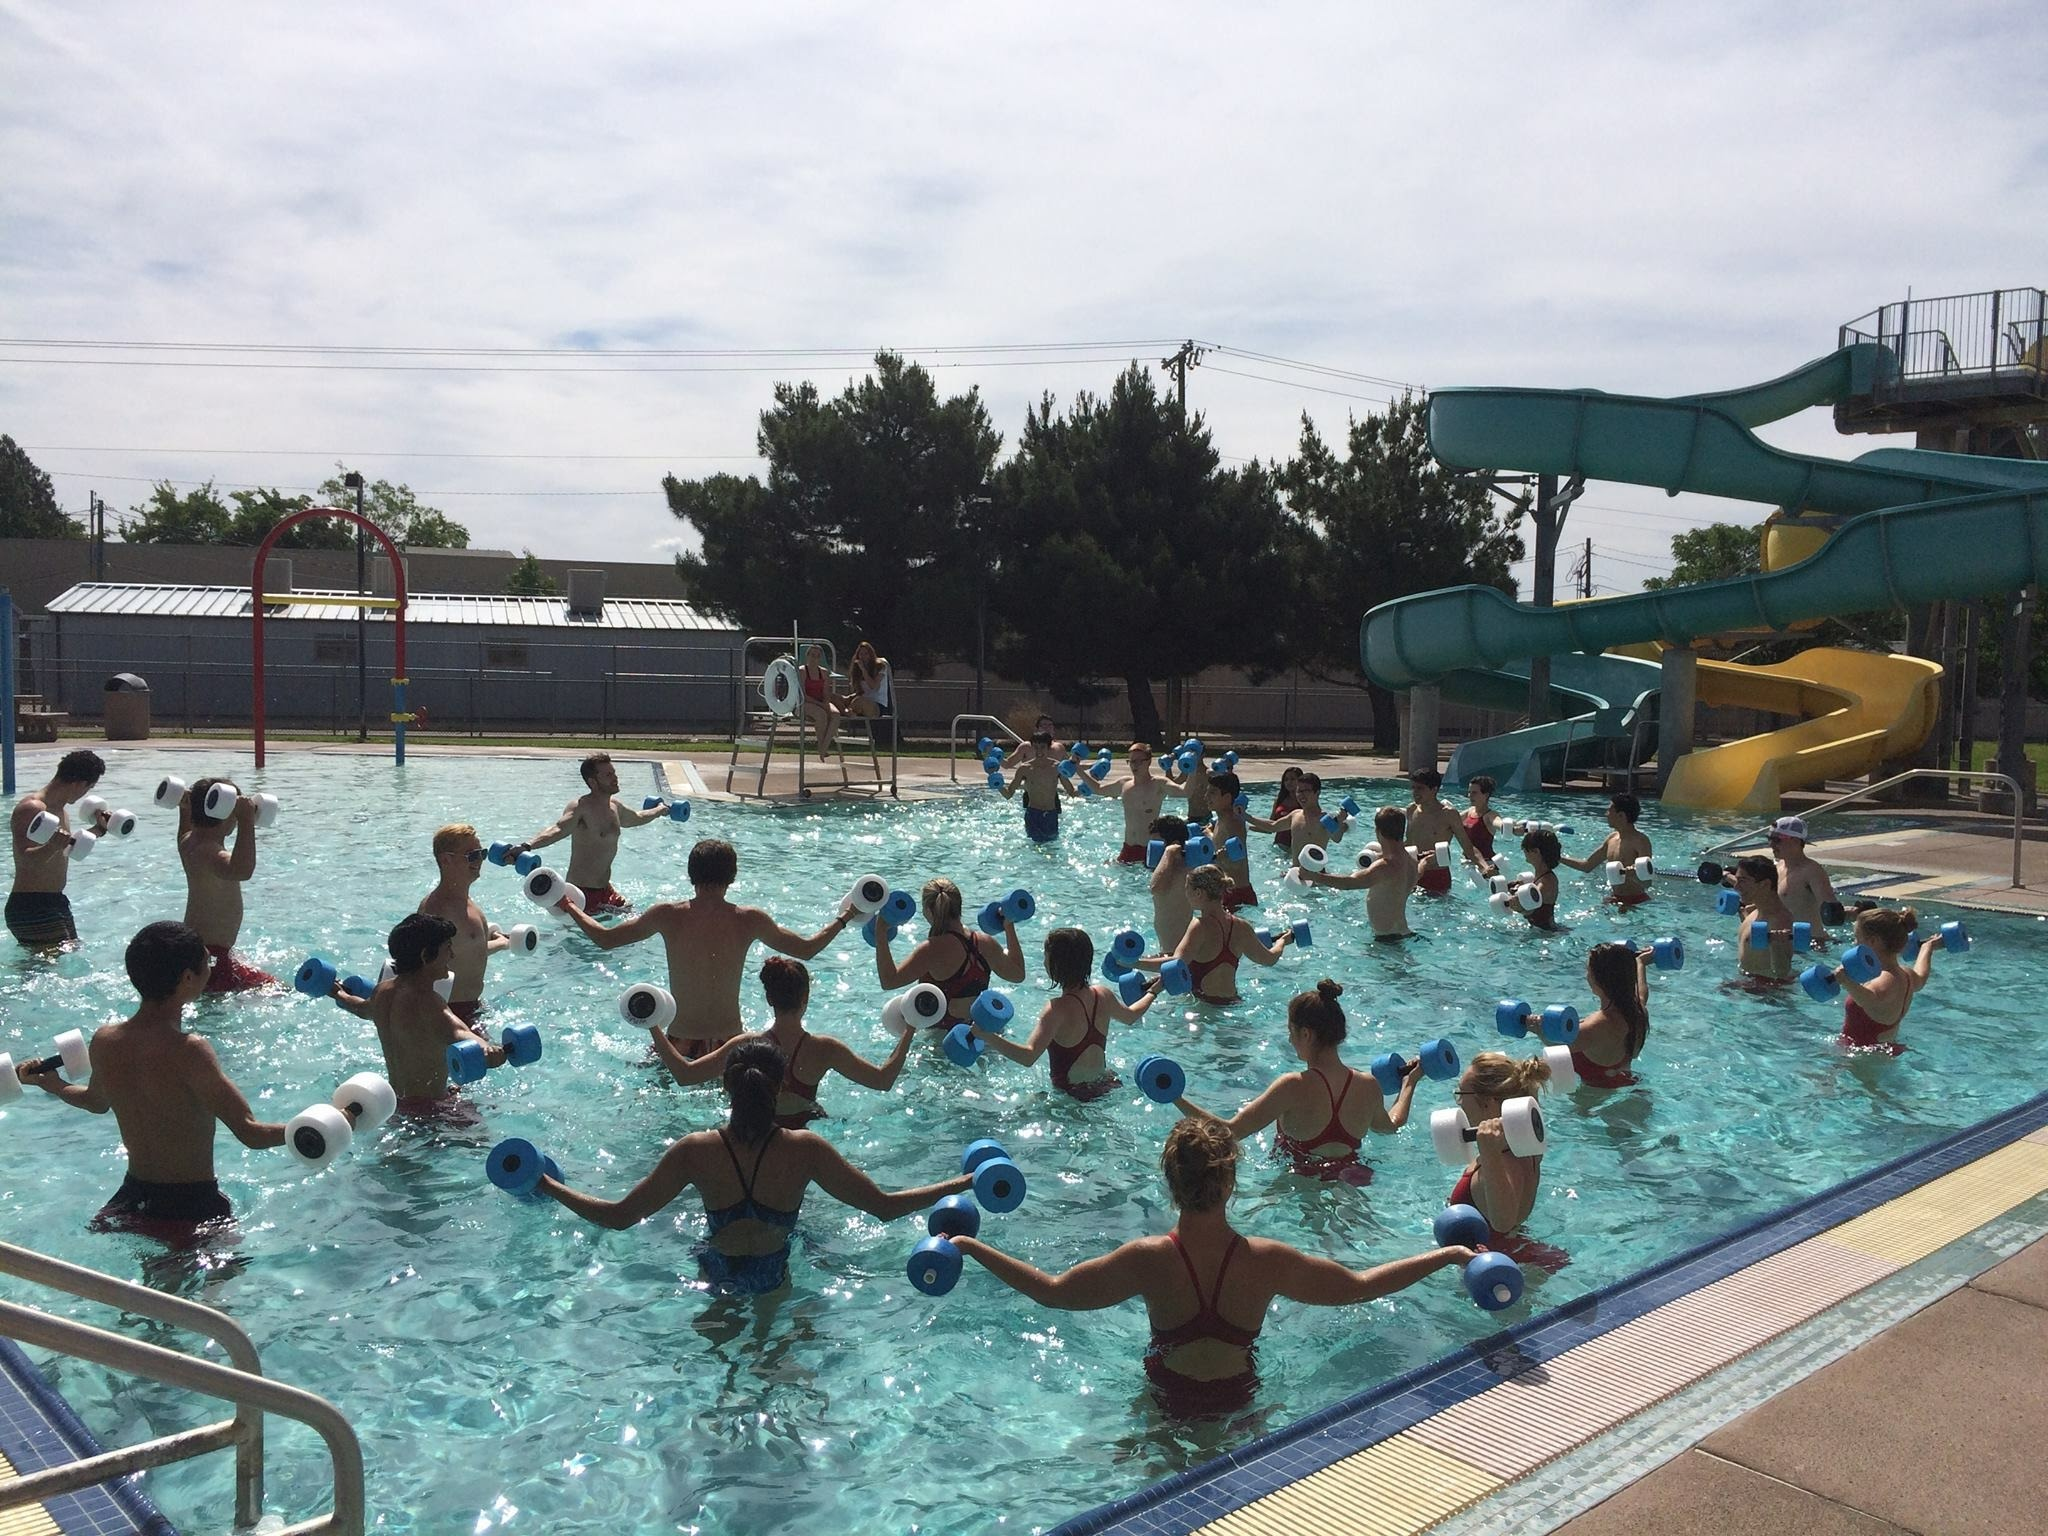 Water exercise is a great way to get fit and have fun